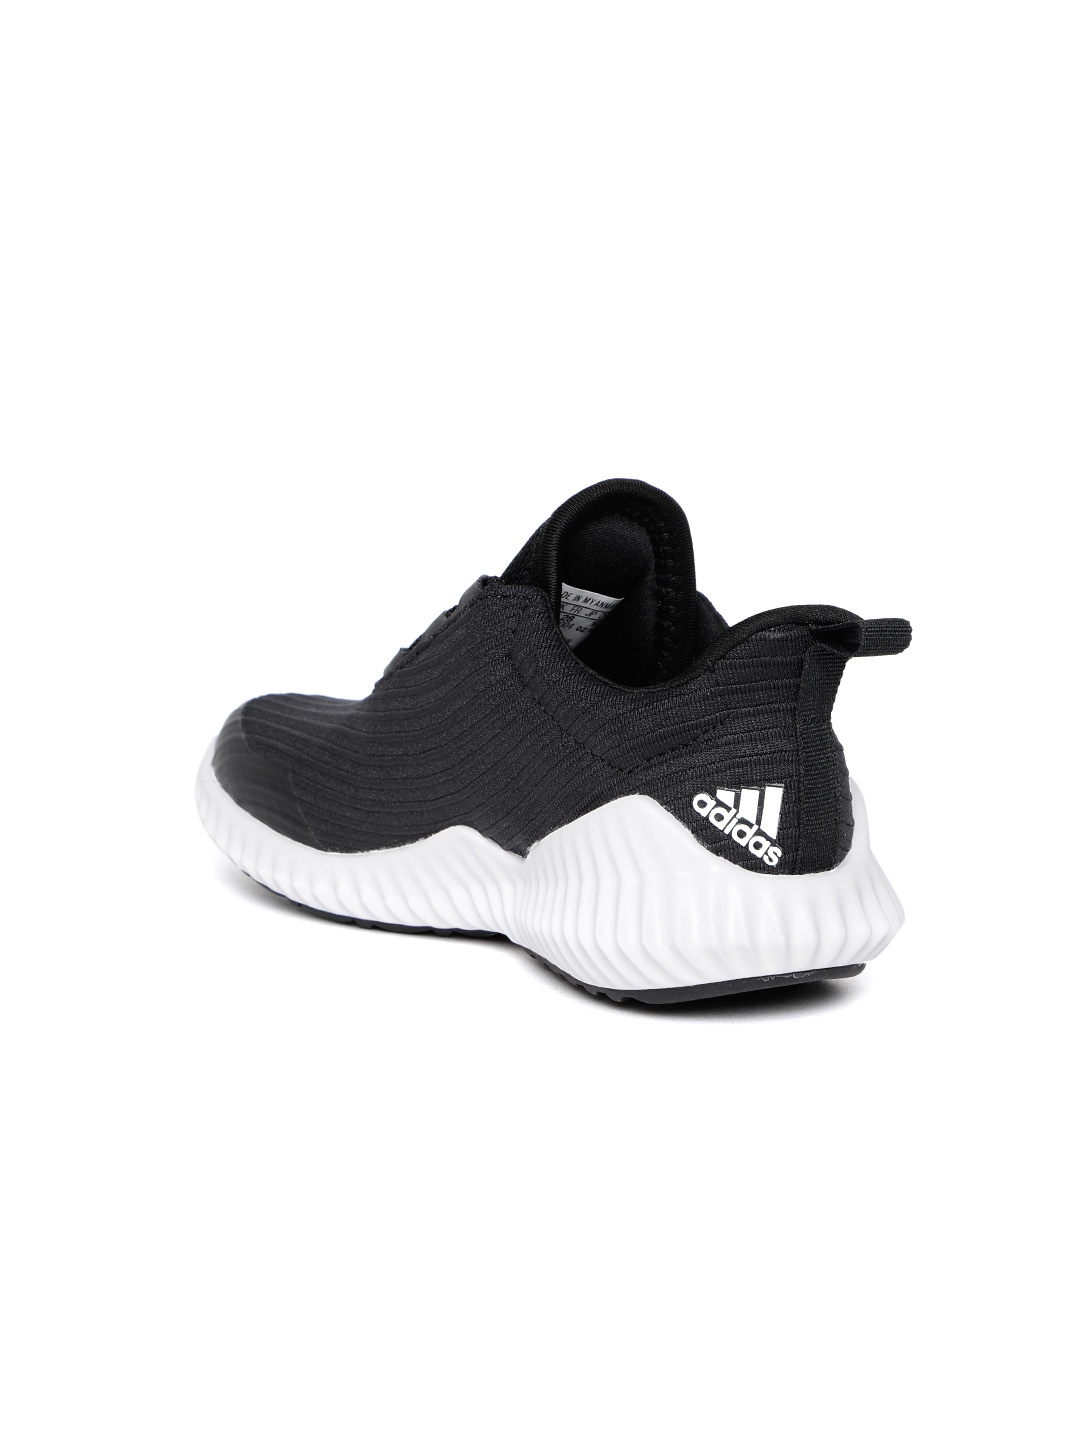 check out a7d21 74024 ADIDAS Kids Black Fortarun Self Striped Running Shoes